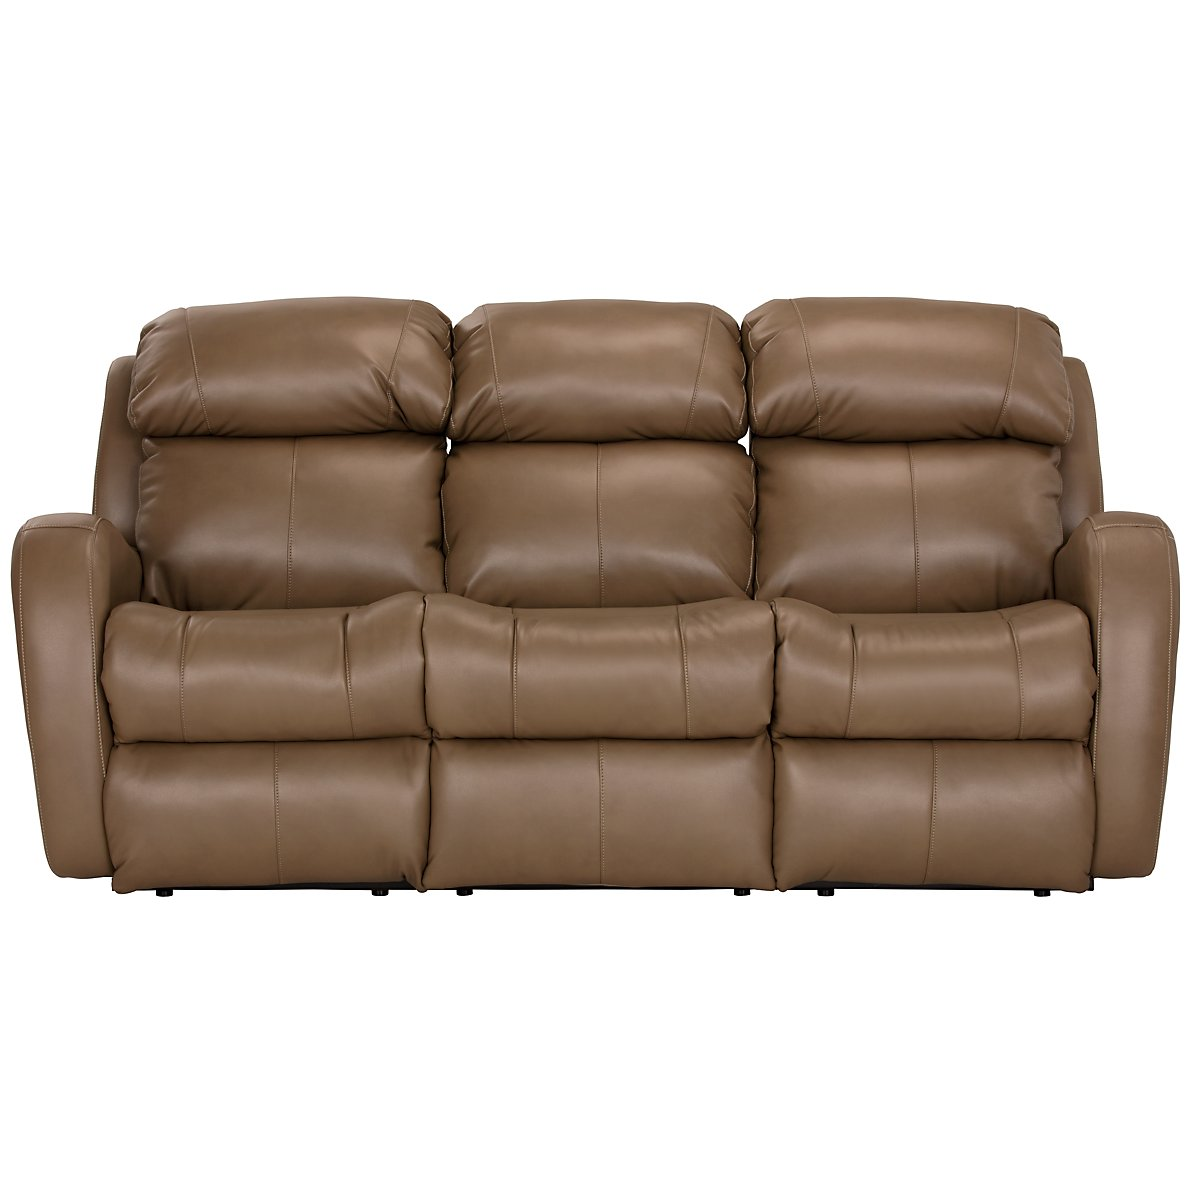 City furniture finn brown microfiber power reclining sofa Power reclining sofas and loveseats